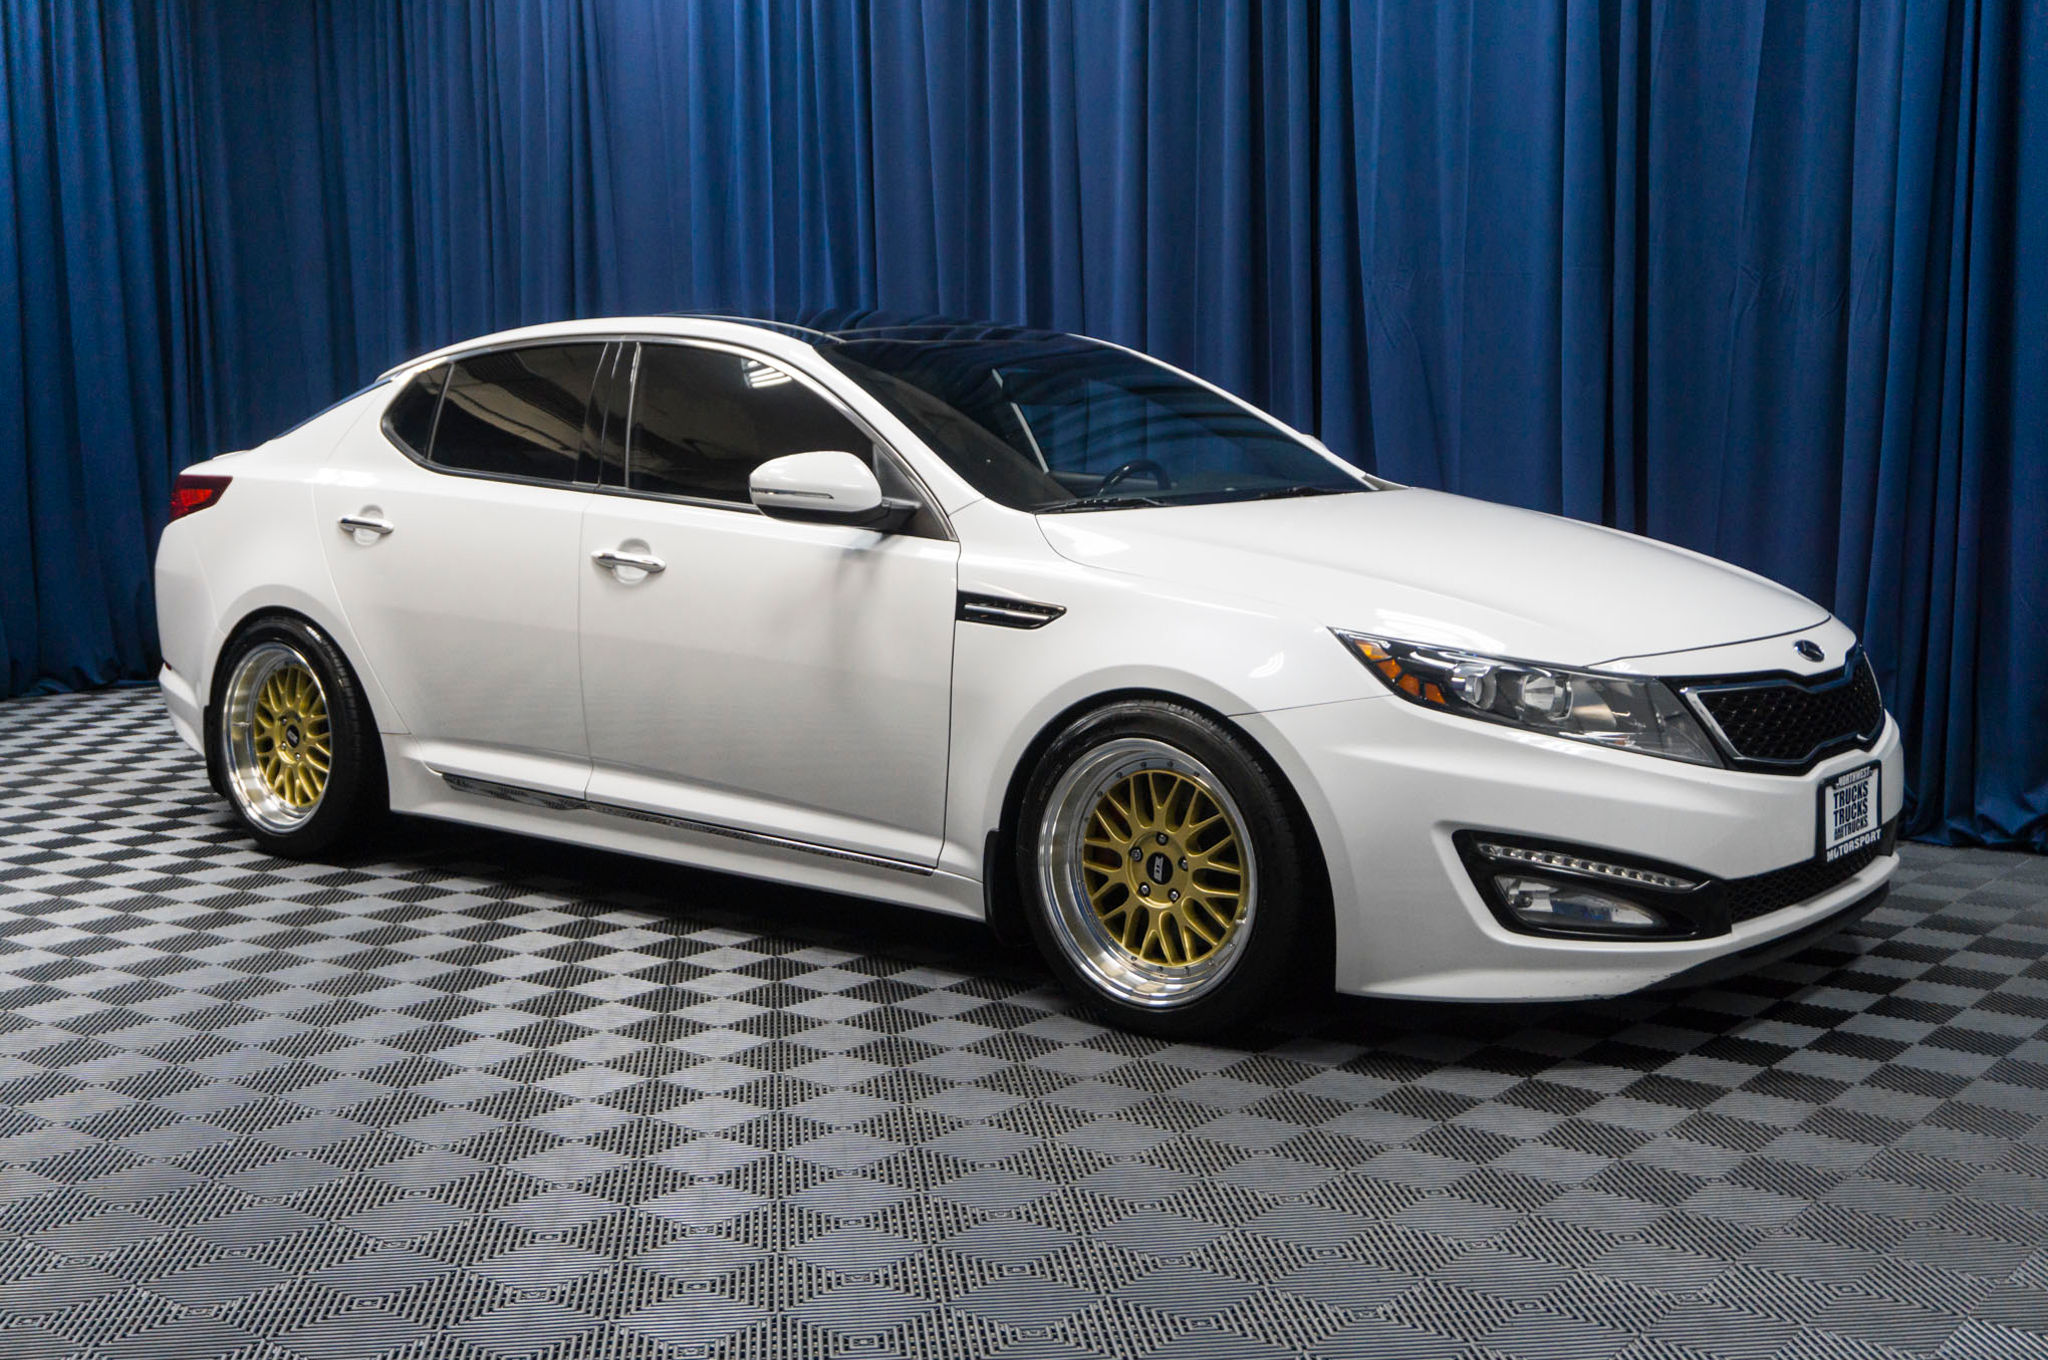 article the sxl luxurious notes kia review of sx reviews autoweek optima trim car is on market most